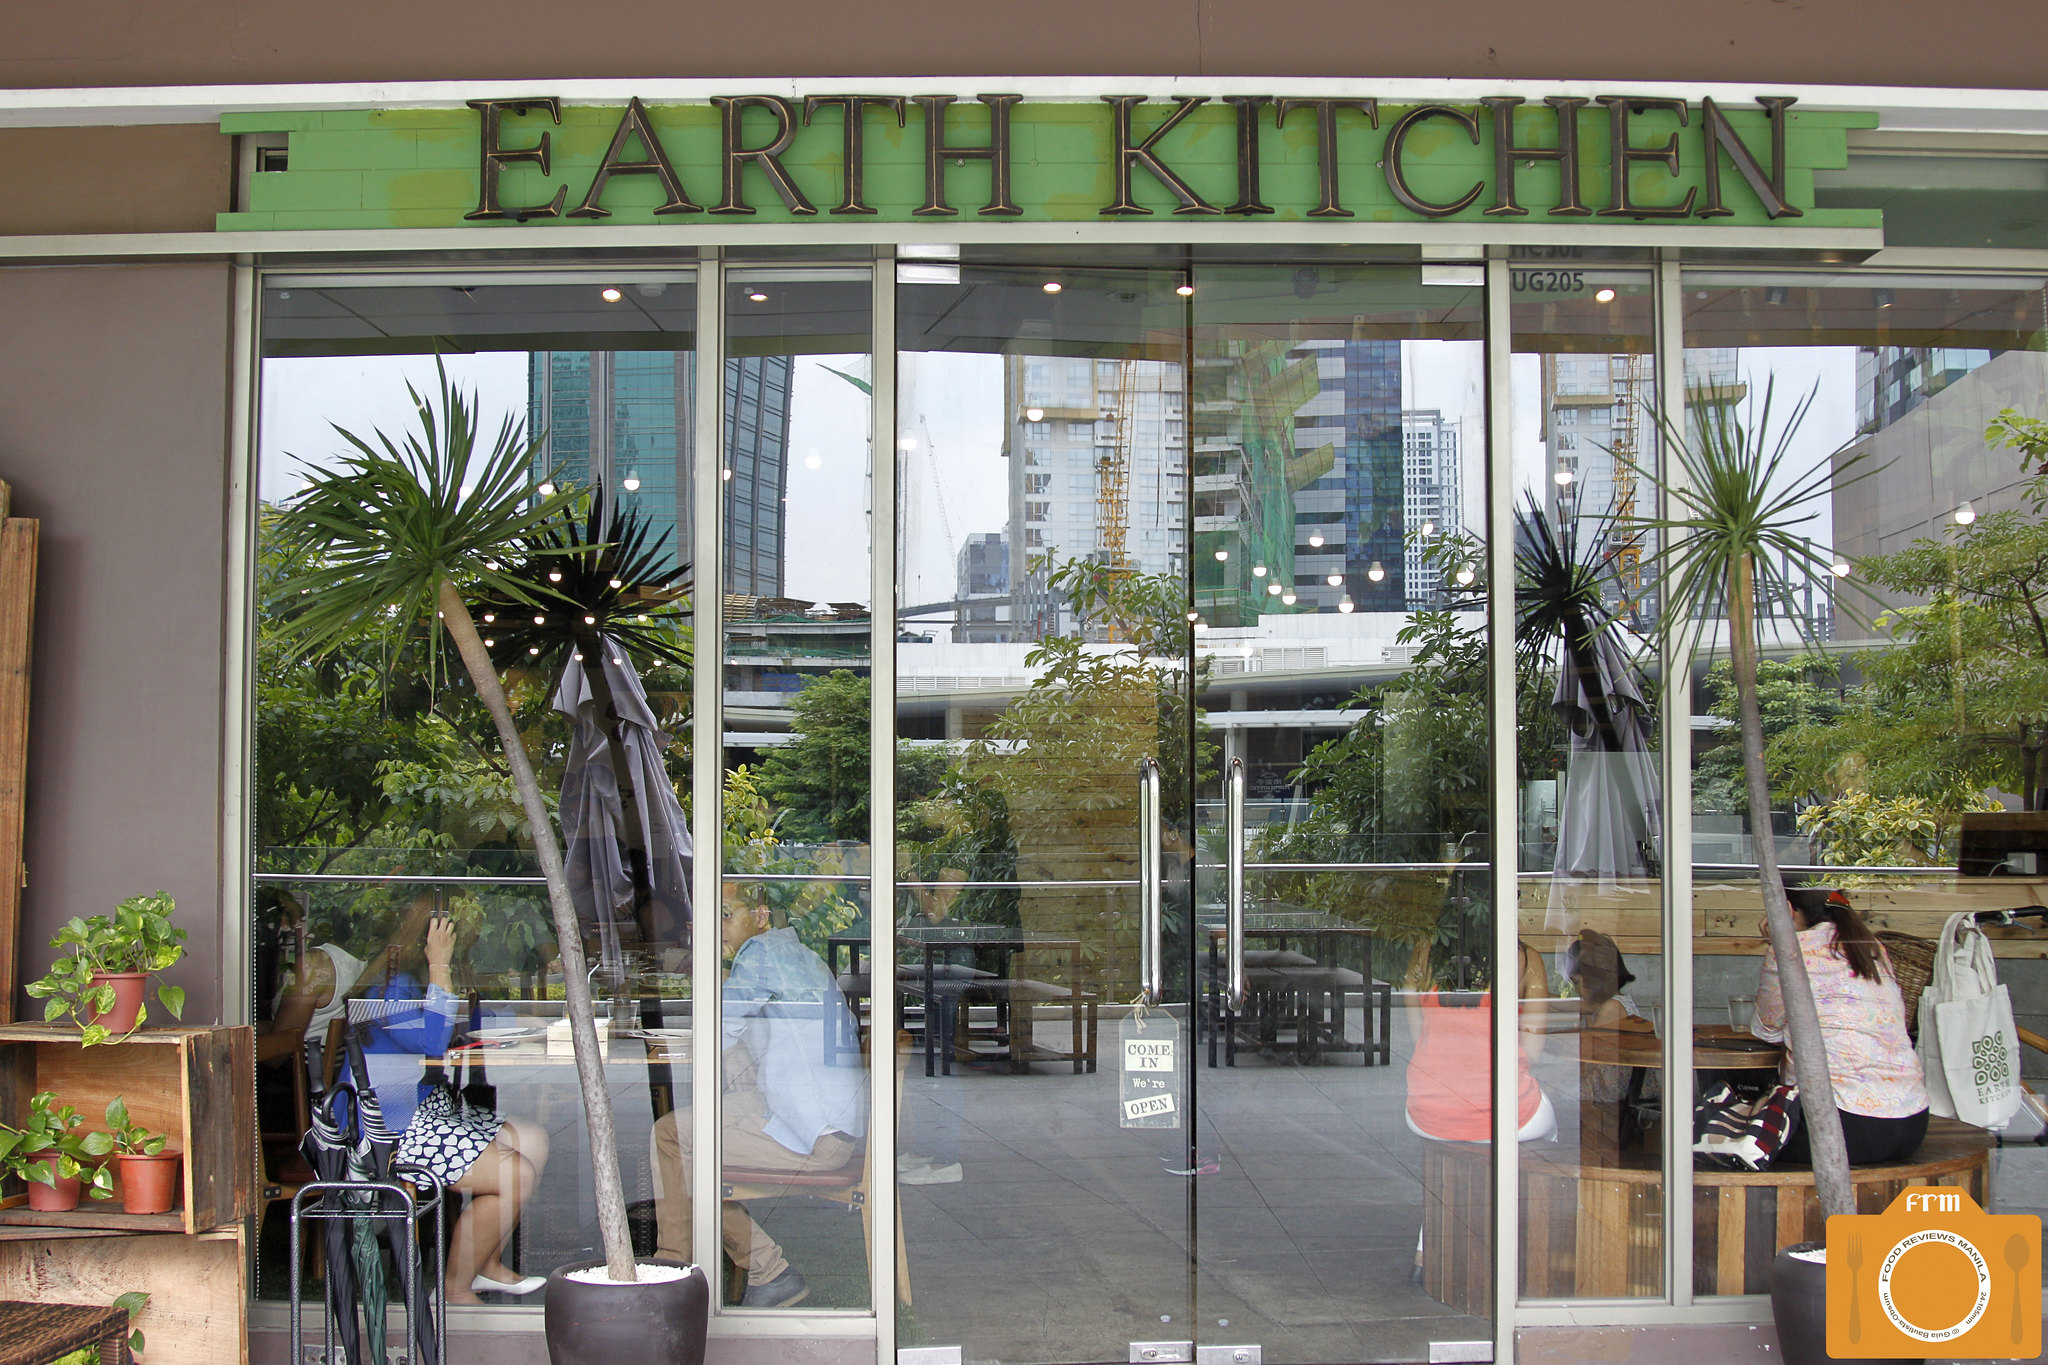 Earth Kitchen facade